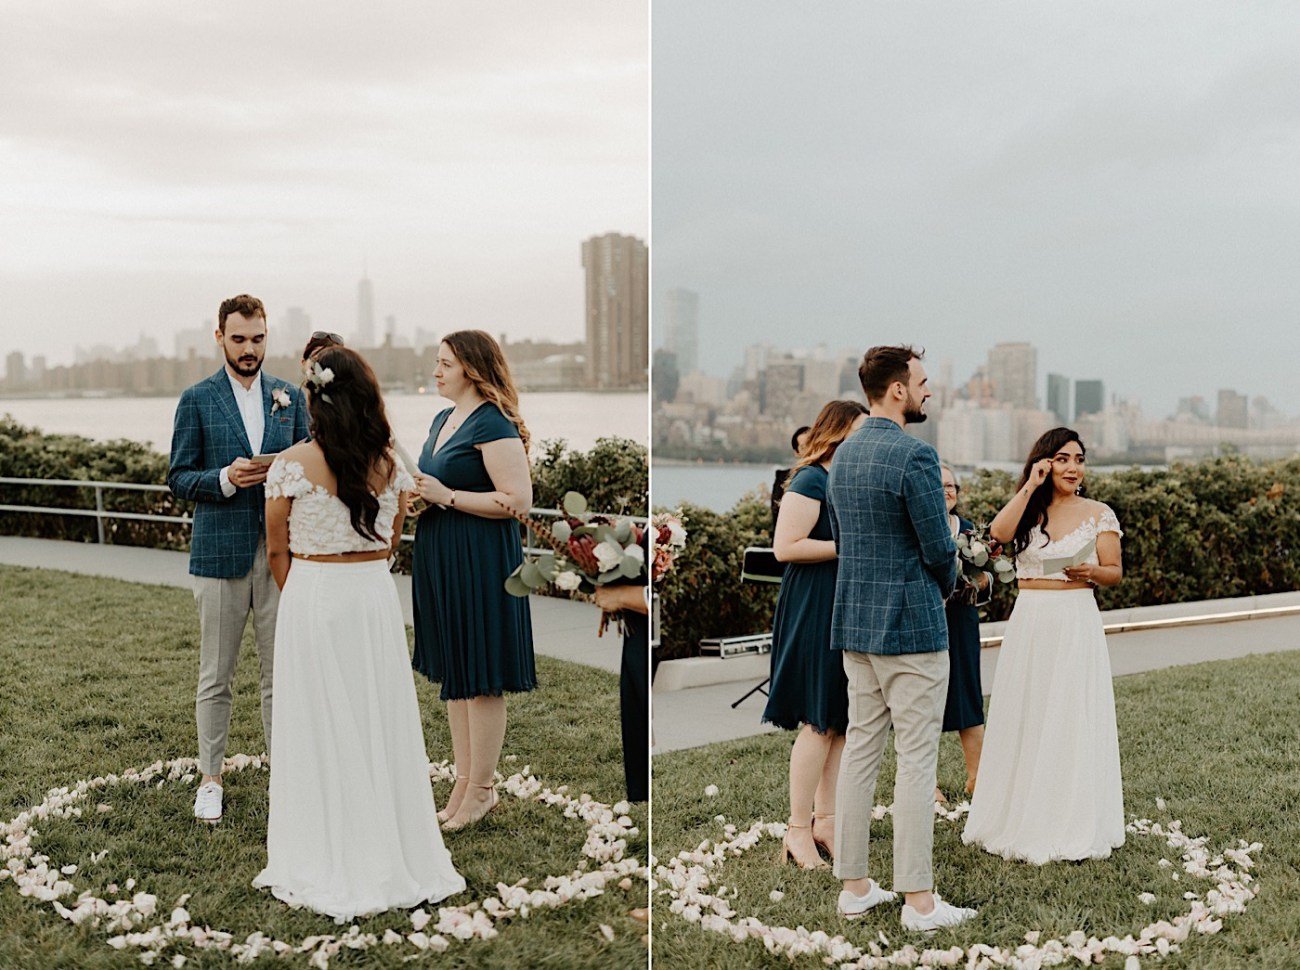 LIC Wedding Greenpoint Wedding LIC Elopement New York Wedding Photographer 051